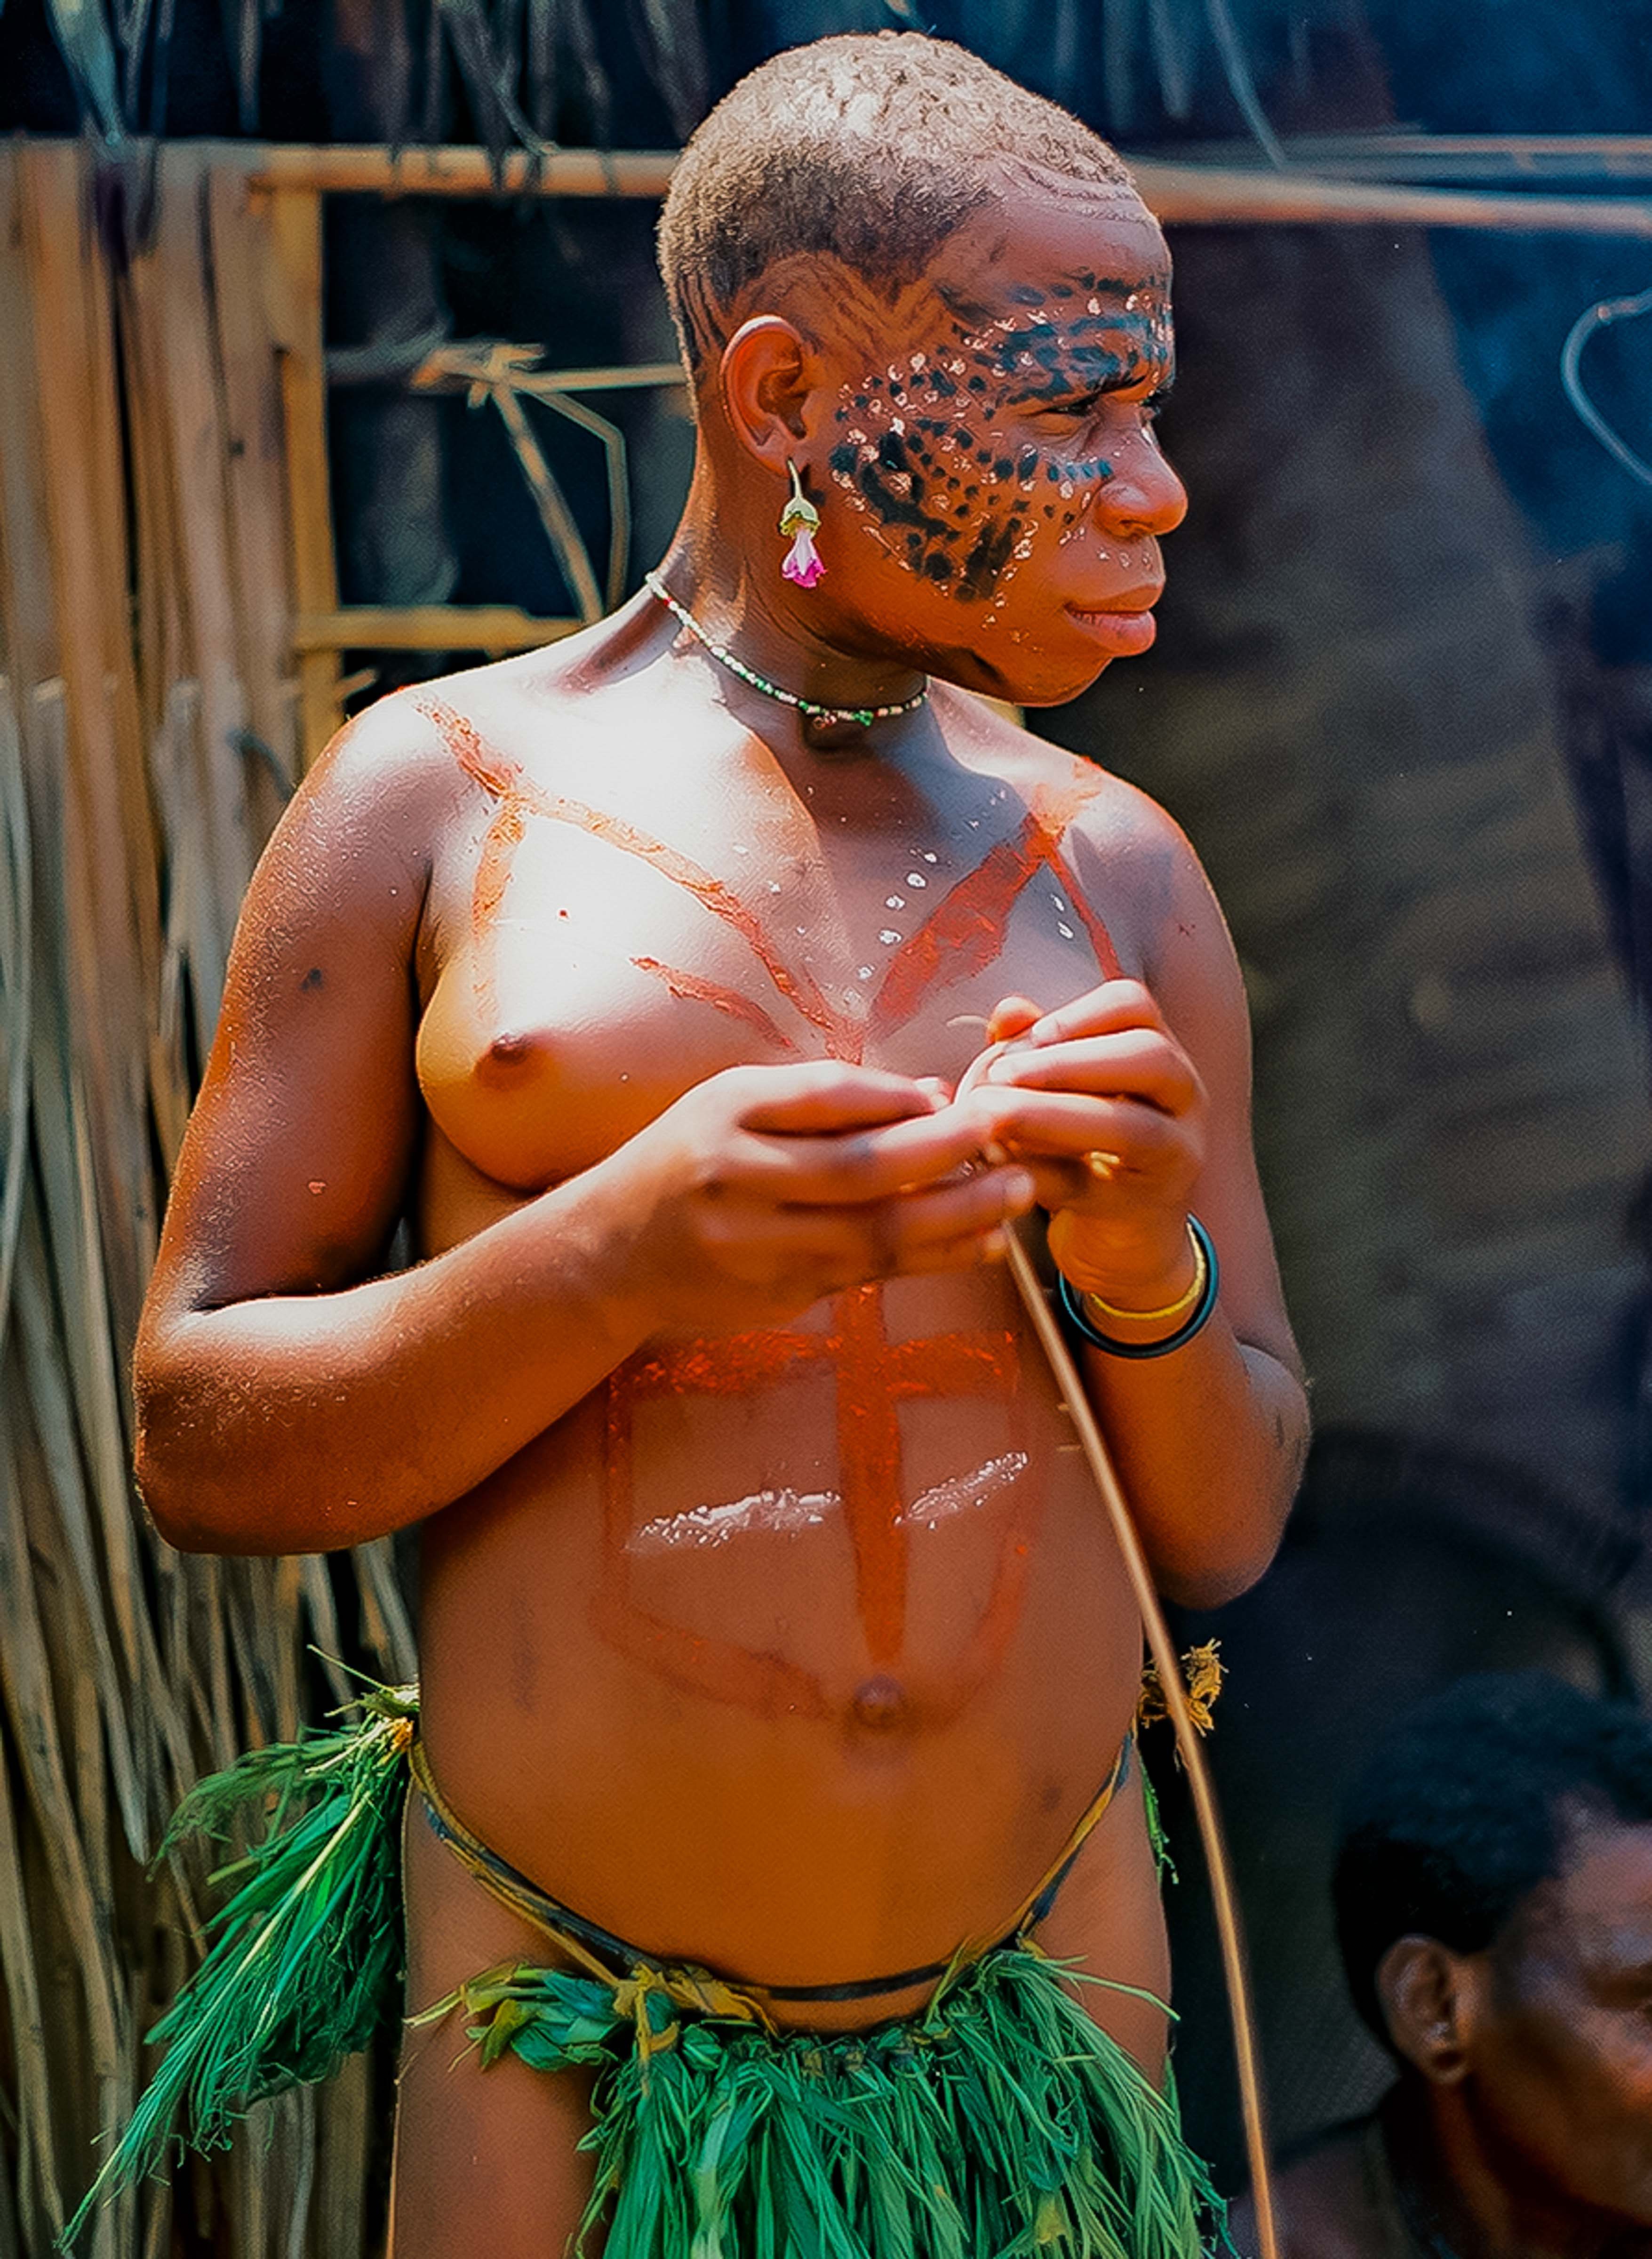 Central African Republic, Pygmy Woman With Designs On Body, 2000